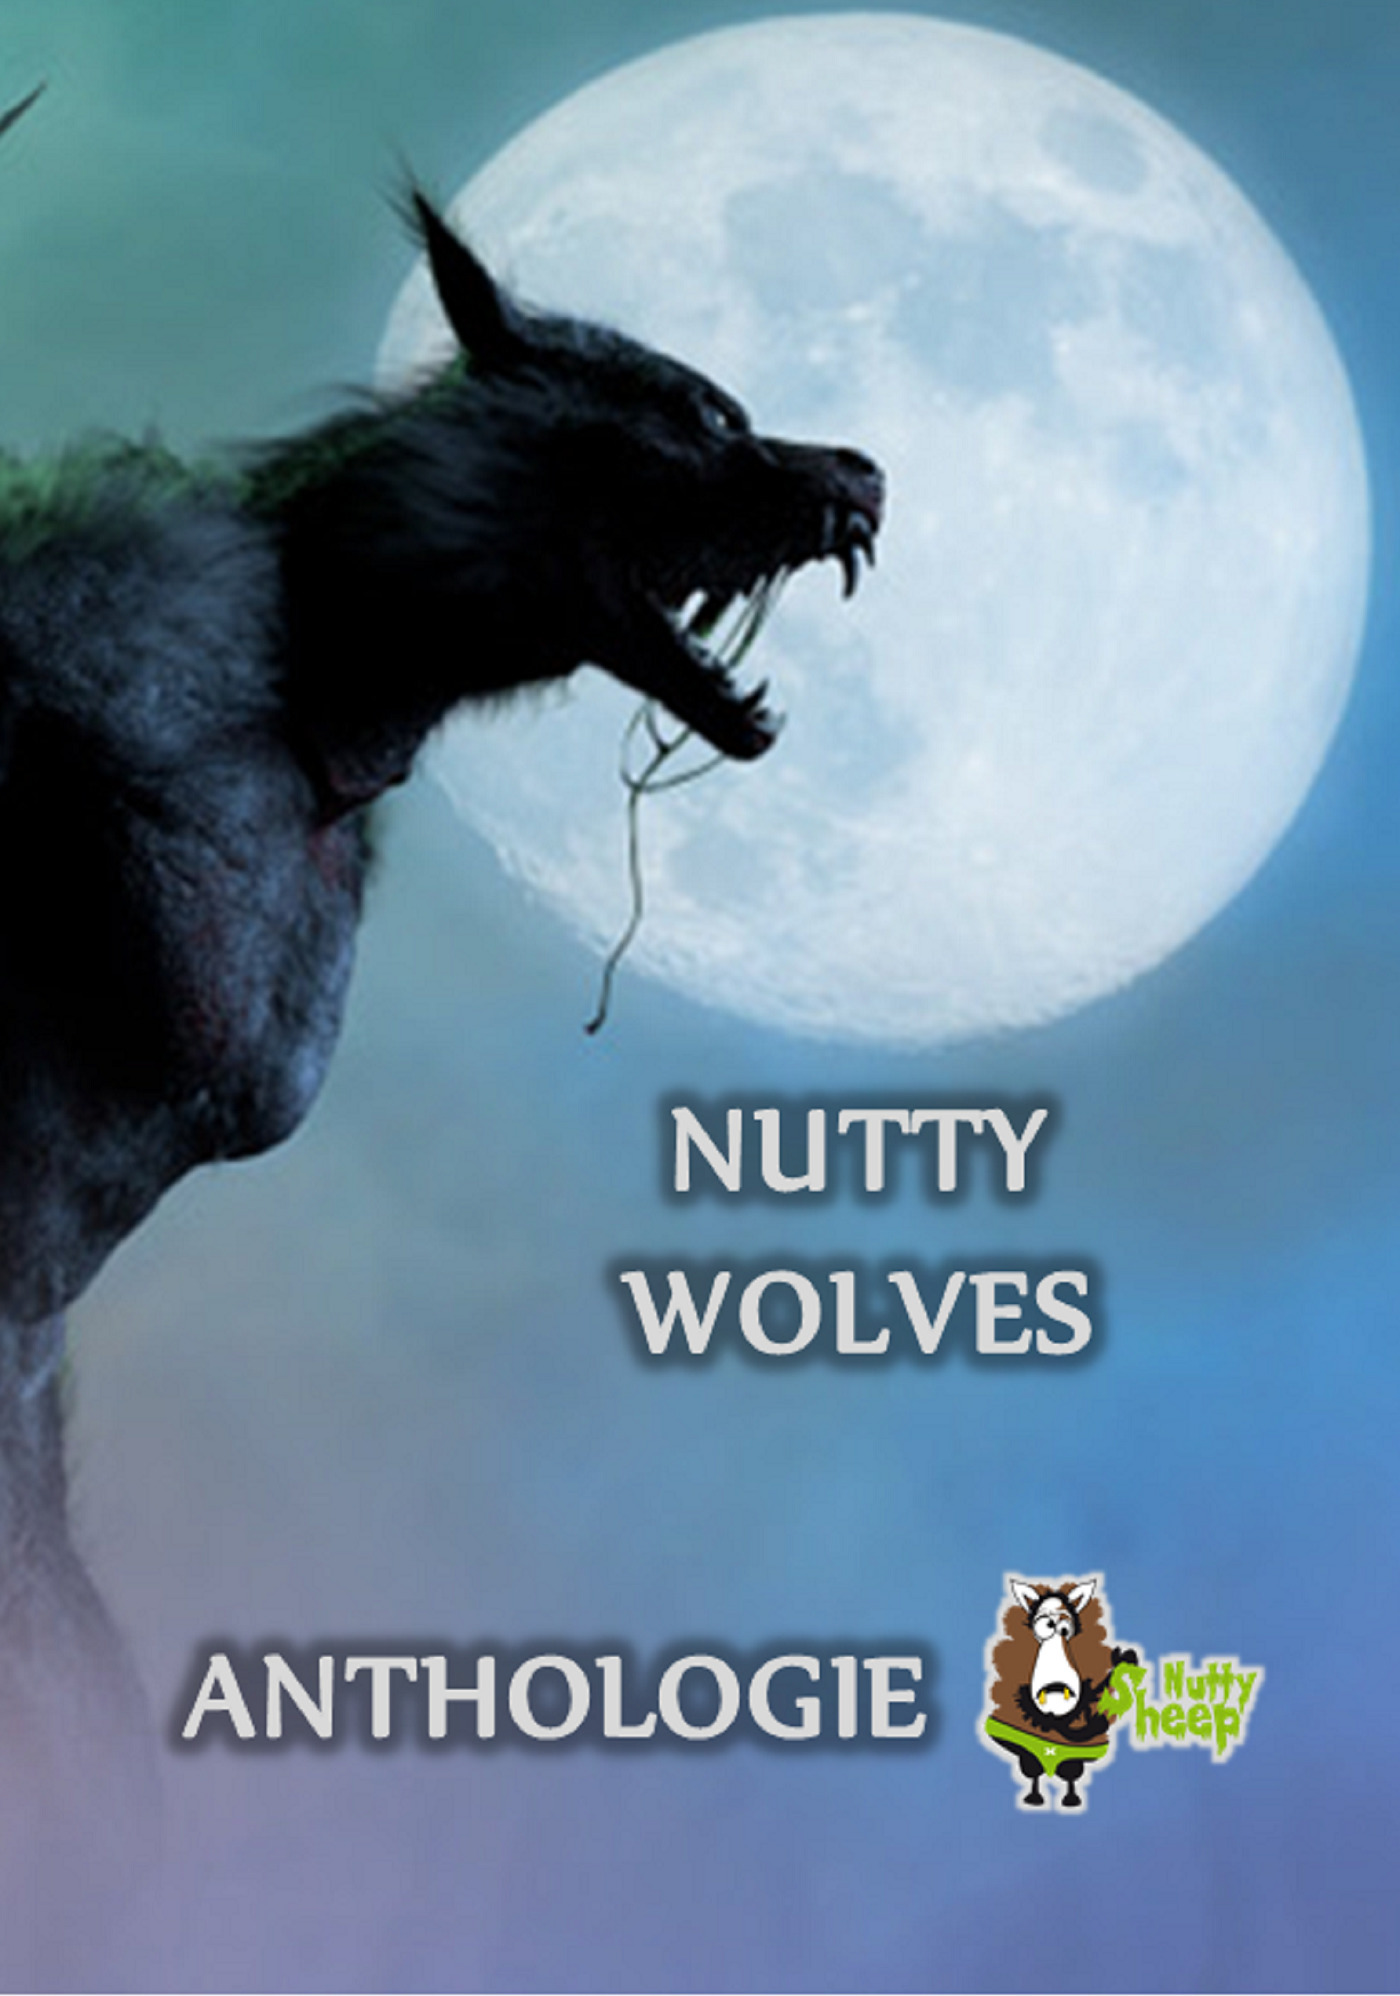 Nutty Wolves  - Patrice Quelard  - Magali Lefebvre  - A.R Morency  -   - Fabien Rey  - Anthony Holay  - Yann Dambo  - Justine Suzat  - Guillaume Sauvage